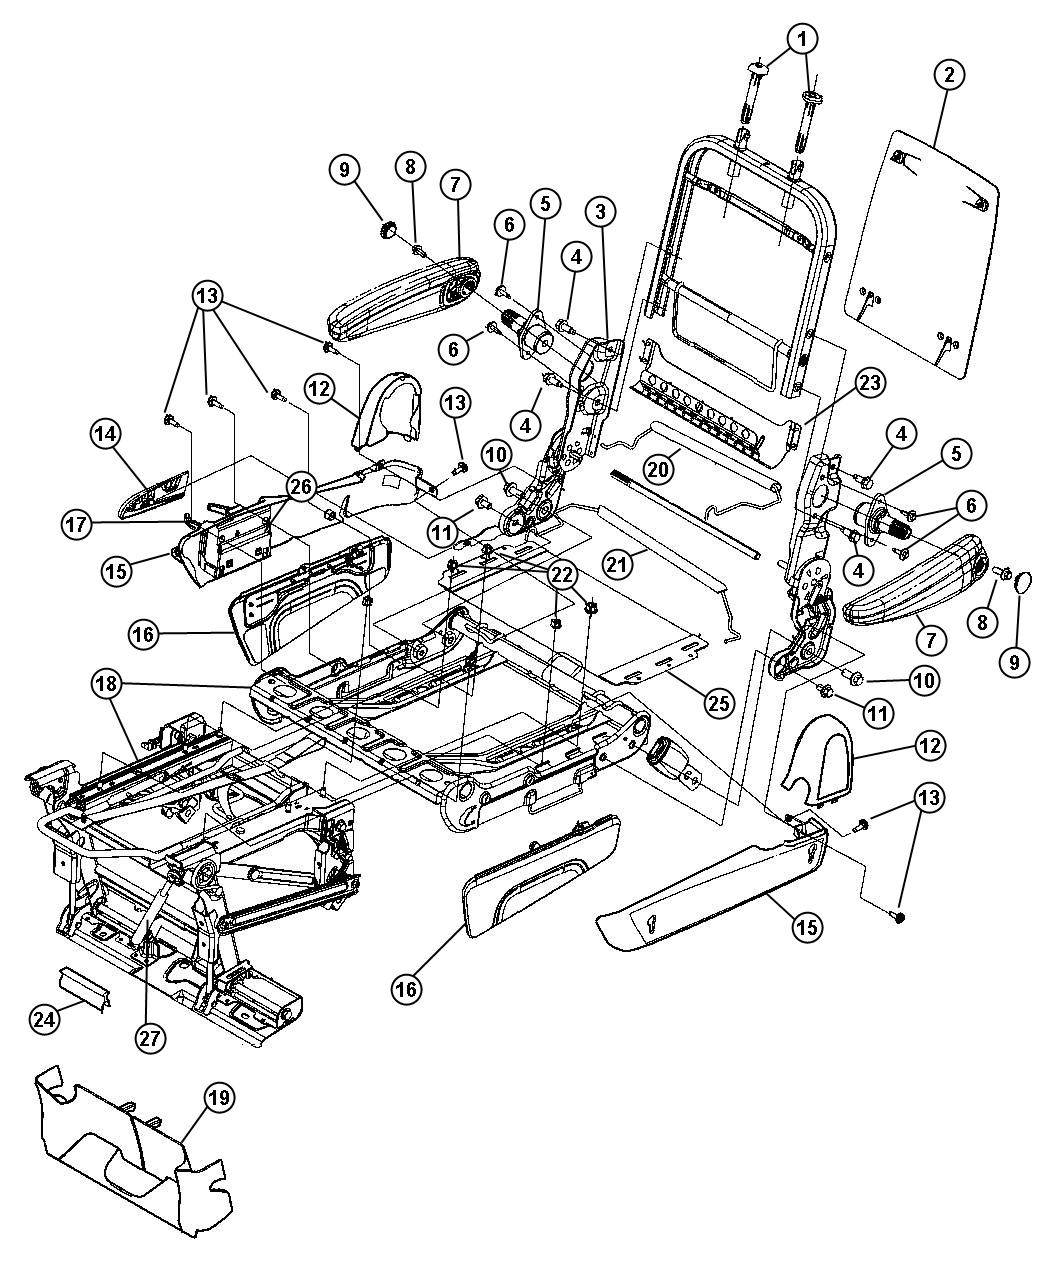 chrysler town and country parts diagram lincoln car 2000 best wiring library 2005 seat cadillac escalade stereo